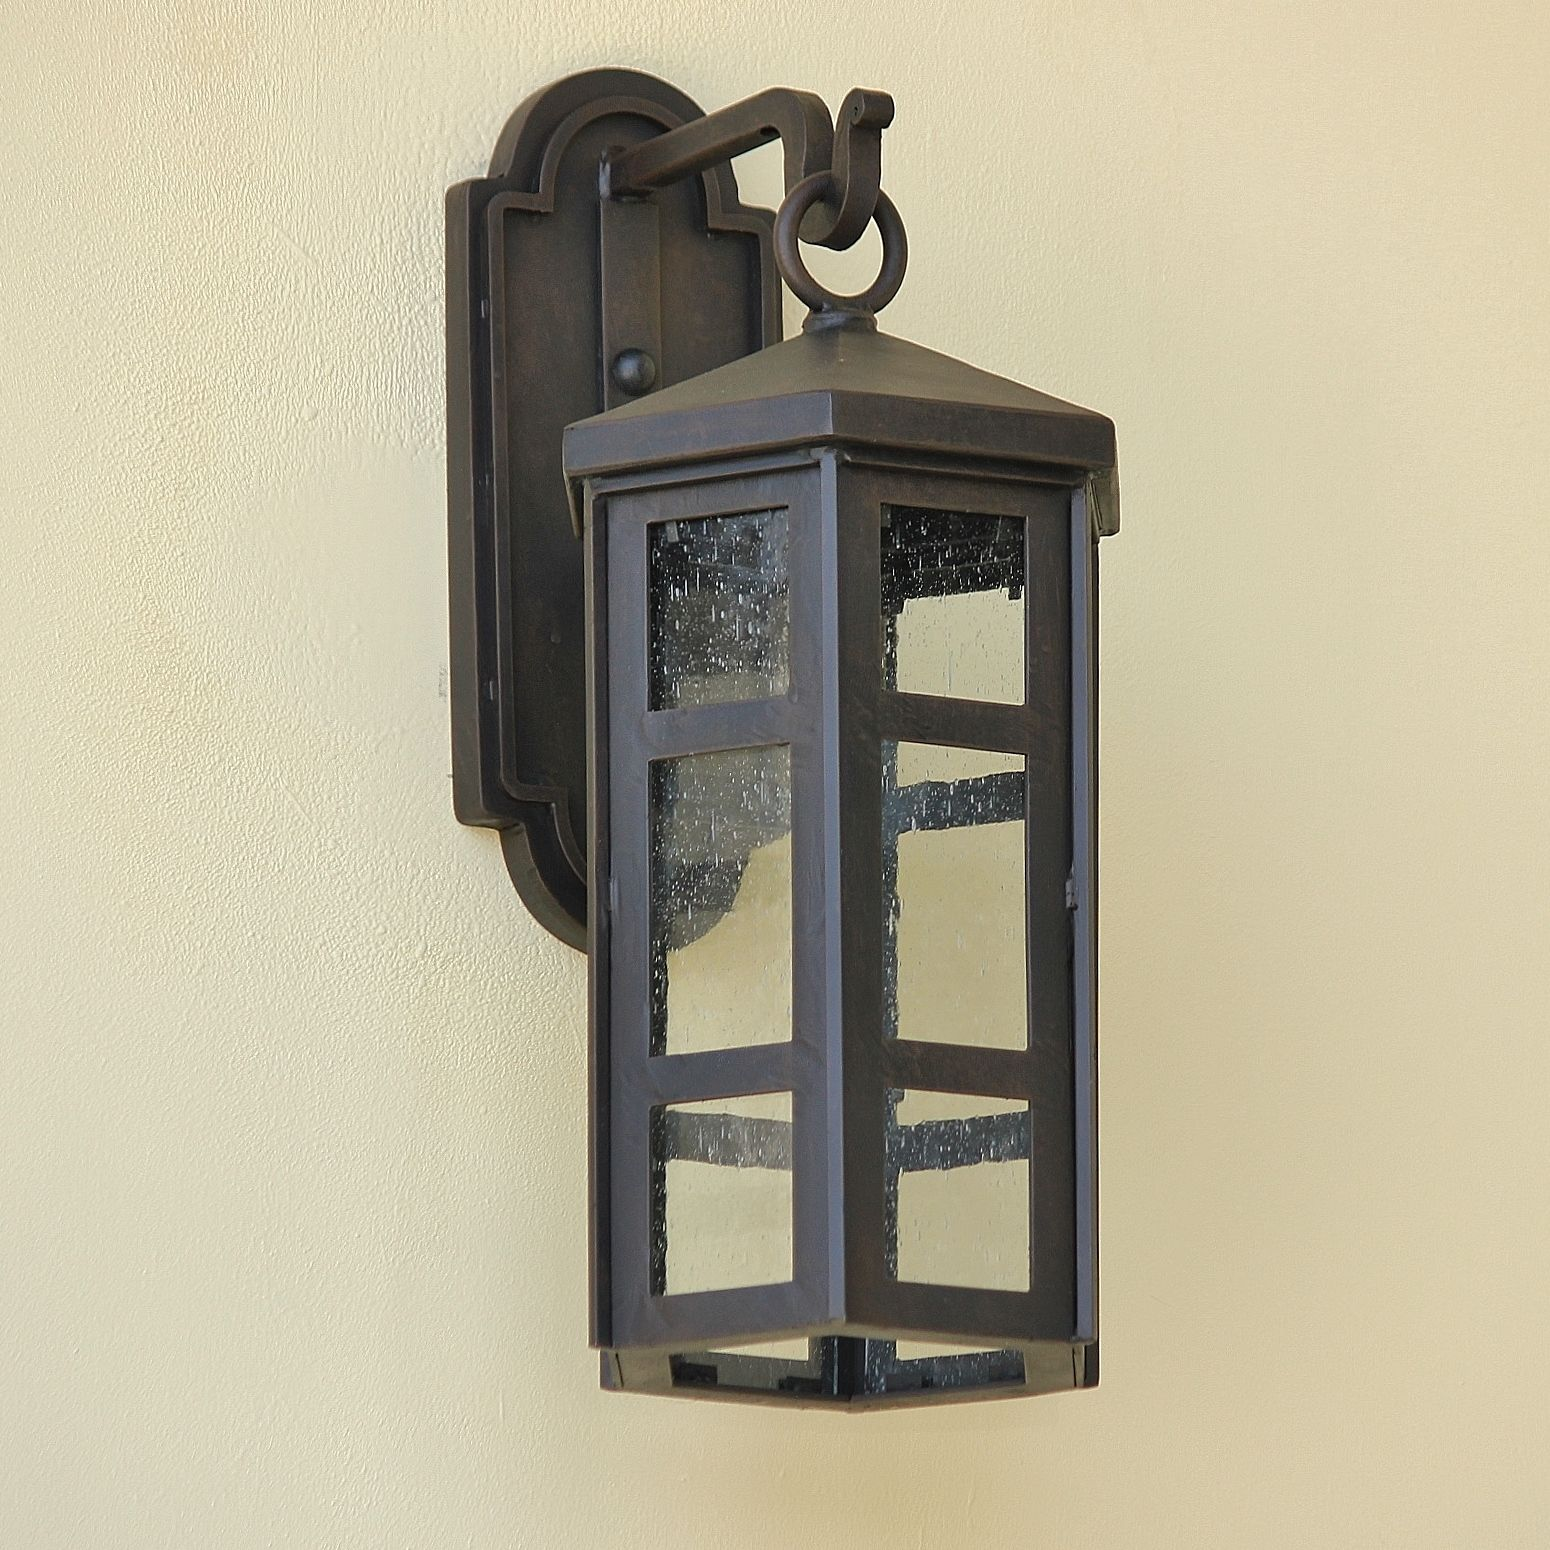 Lights Of Tuscany 6981 1 Spanish Contemporary Wrought Iron Outdoor Lighting Fixture